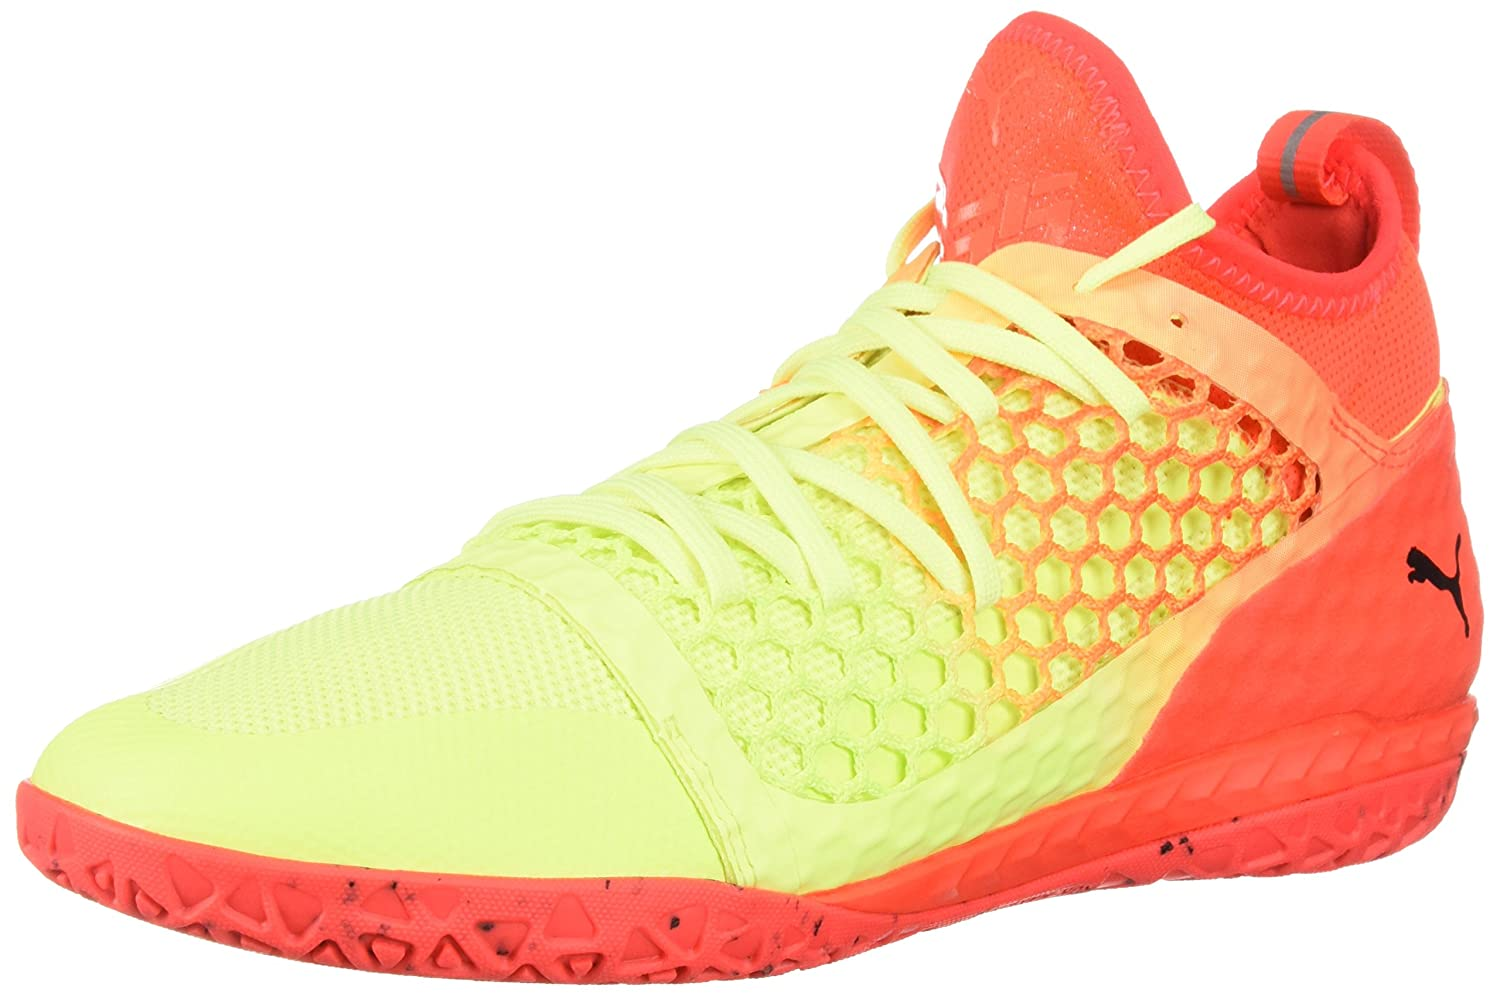 Puma Herren 365 Ignite Netfit CT Schuhe  42 EU D(M) |Fizzy Yellow-red Blast-puma Black